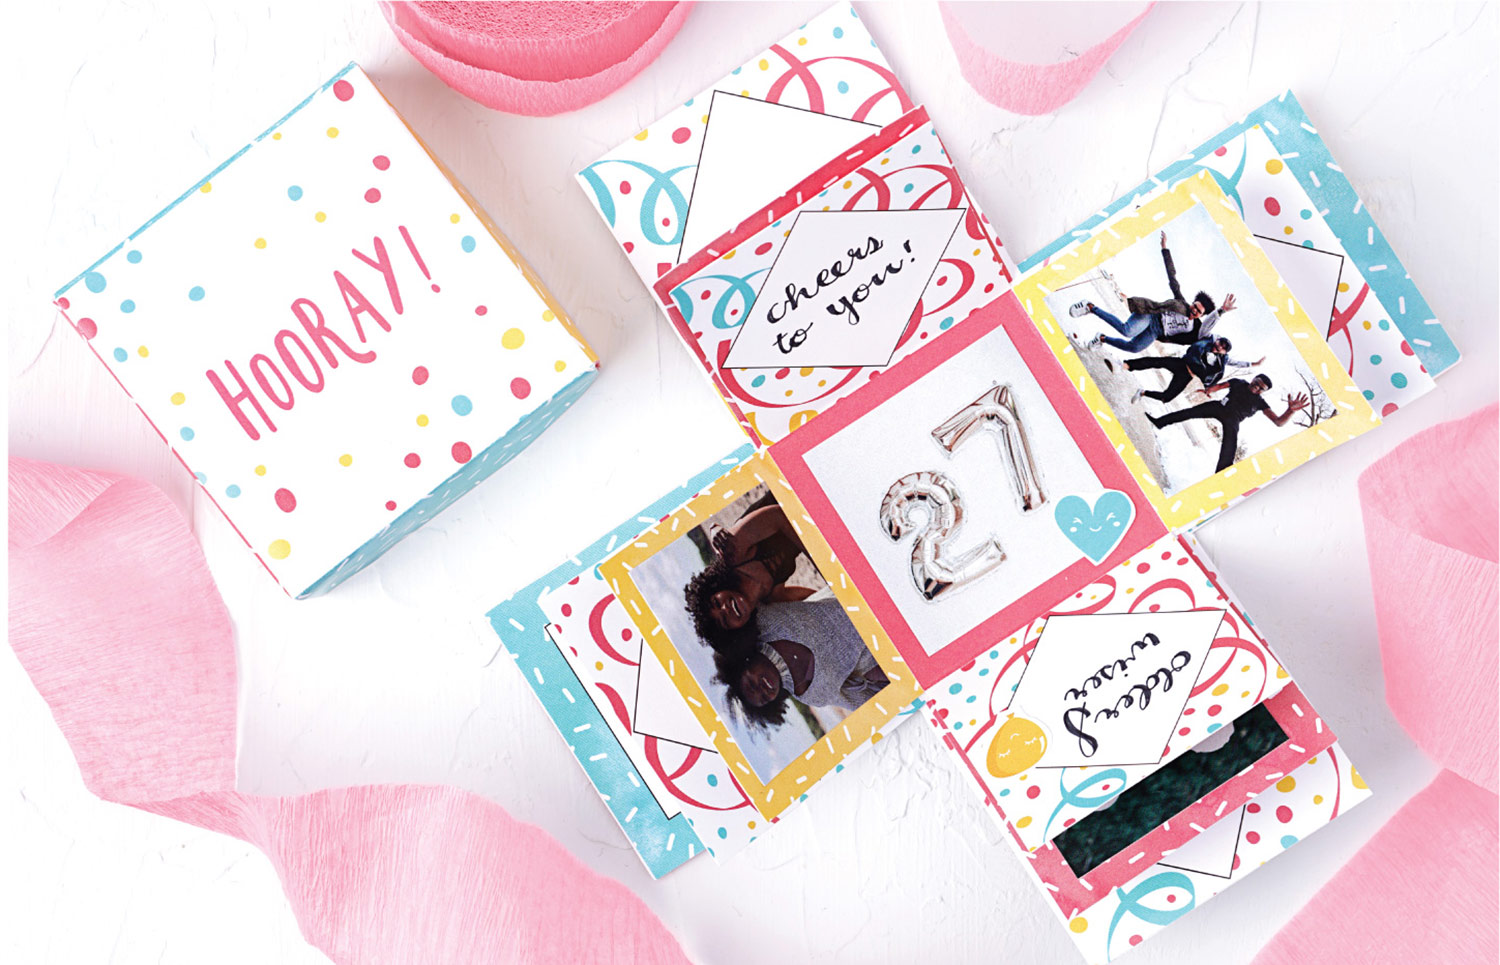 Assembled and embellished birthday explosion box free printable with pink confetti ribbon